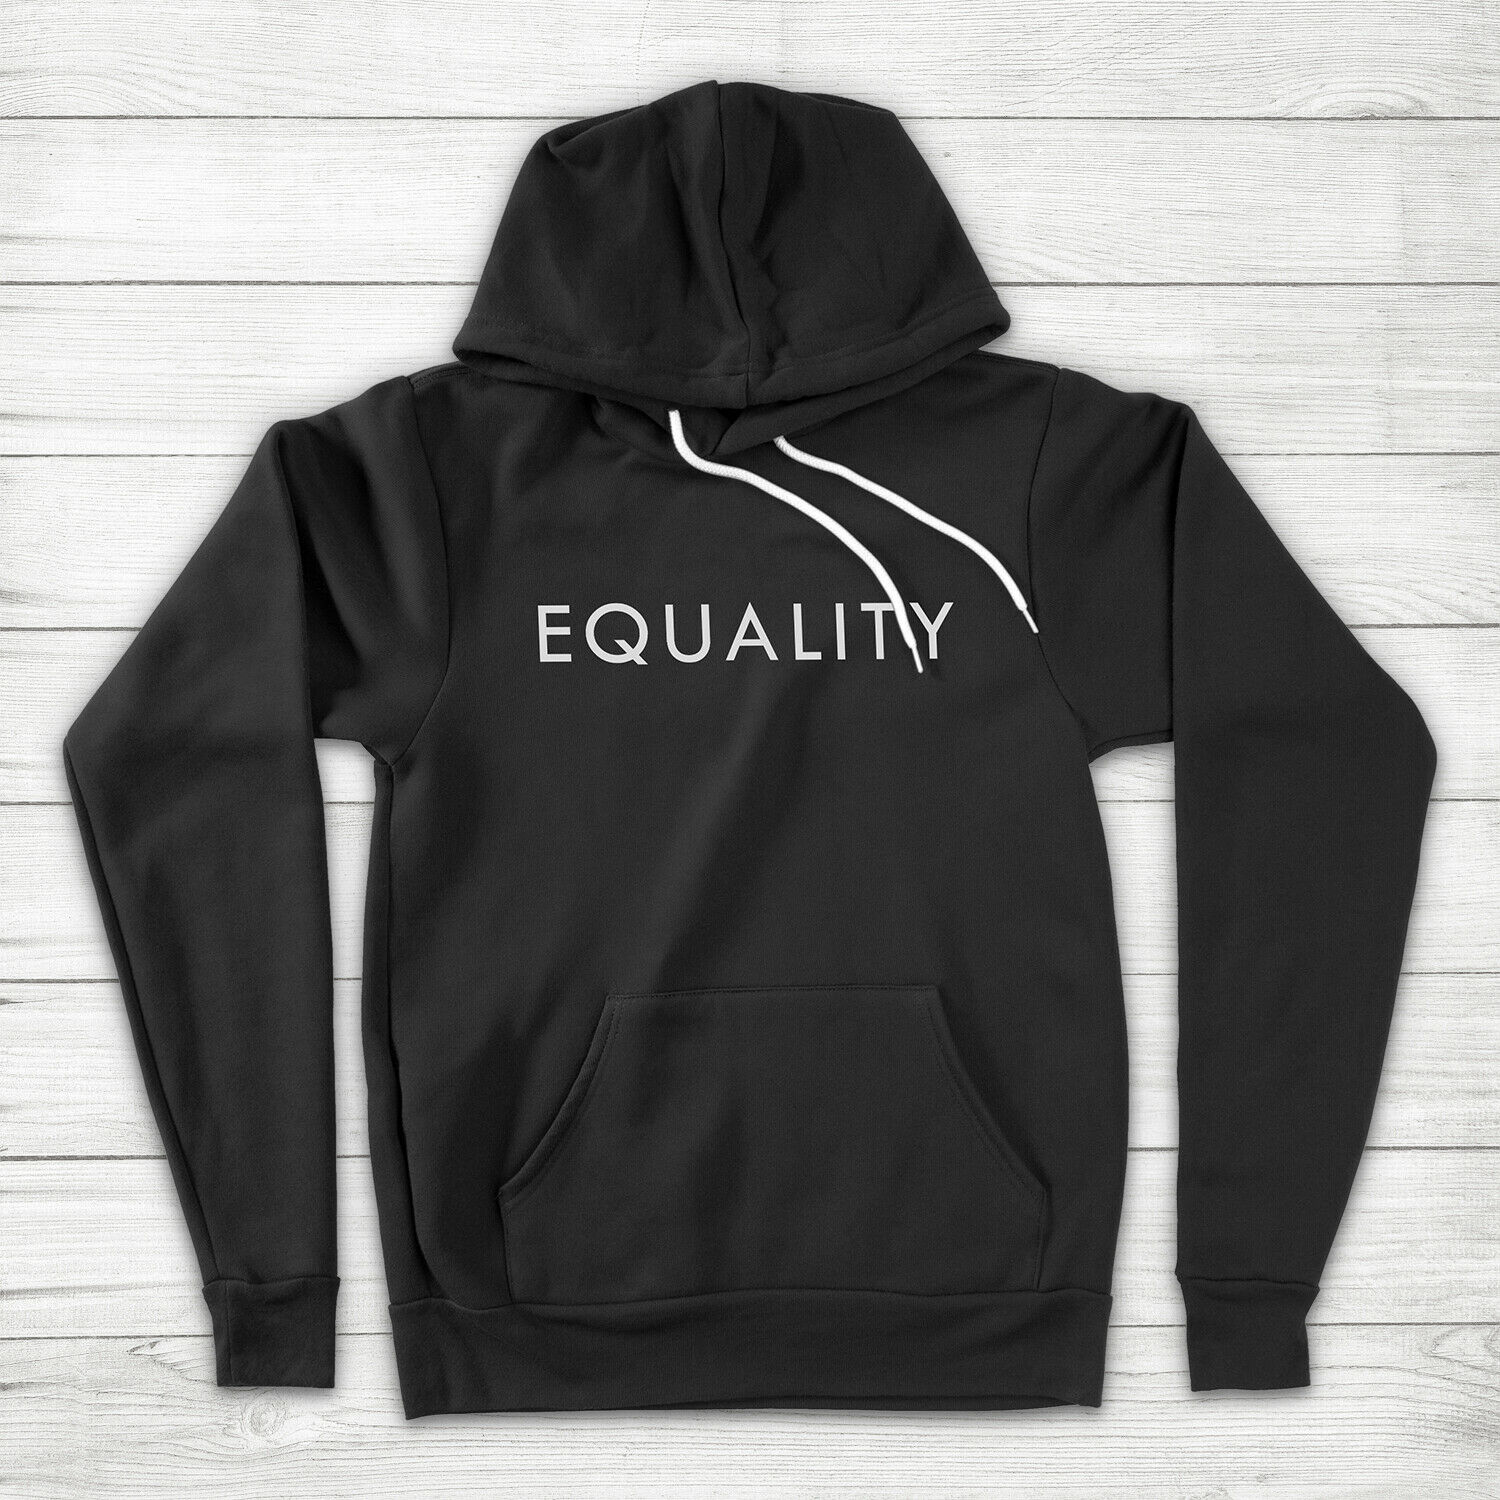 Equality Black Lives Matter LGBTQ Equal Rights Activist Unisex Hoodie Sweater Activewear